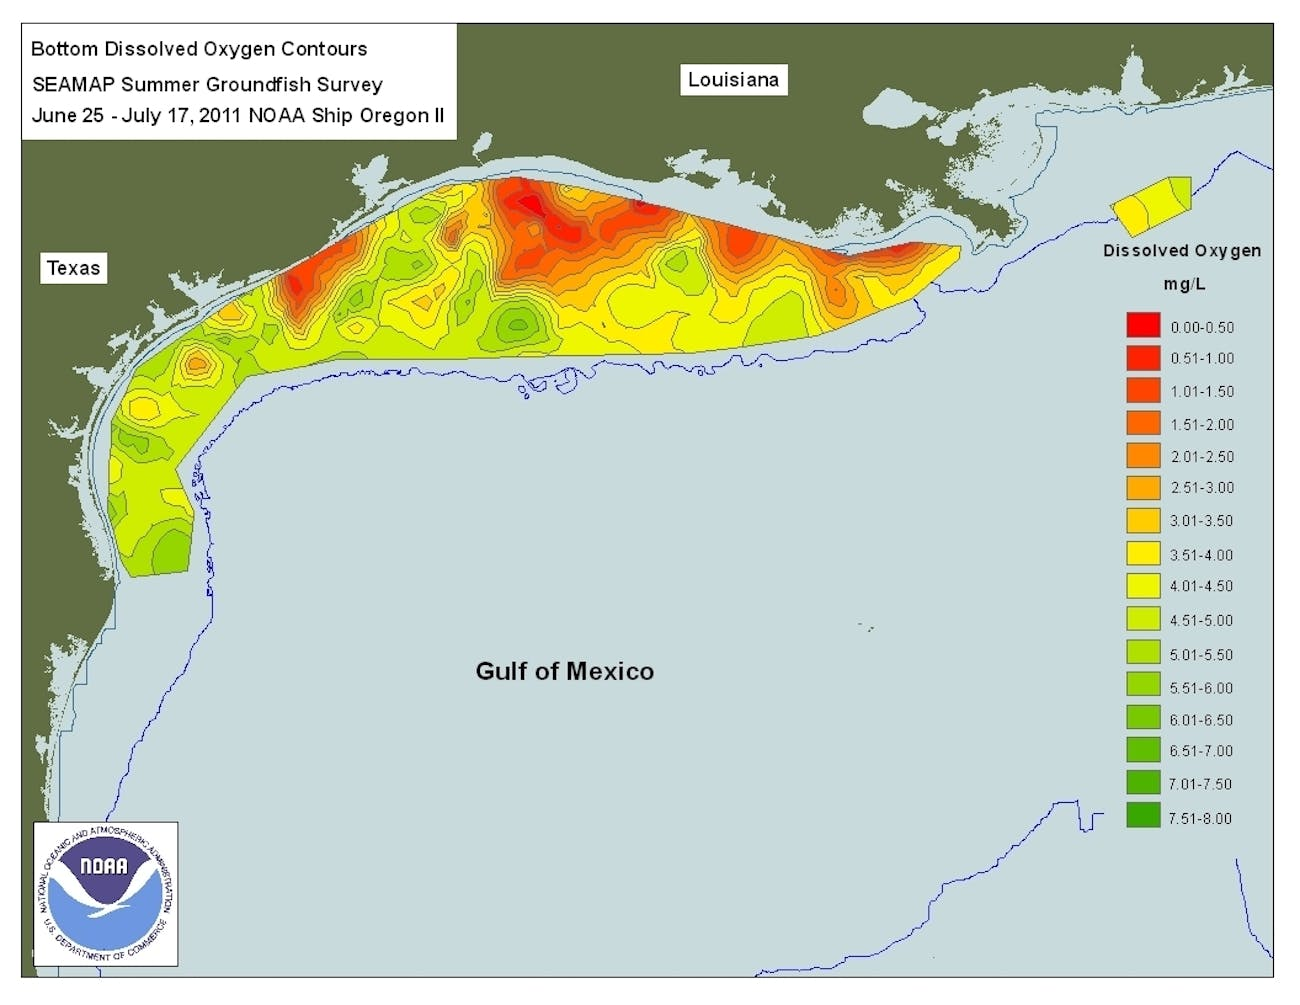 NOAA map shows dissolved oxygen content off the coasts of Louisiana and Texas in the summer of 2011.